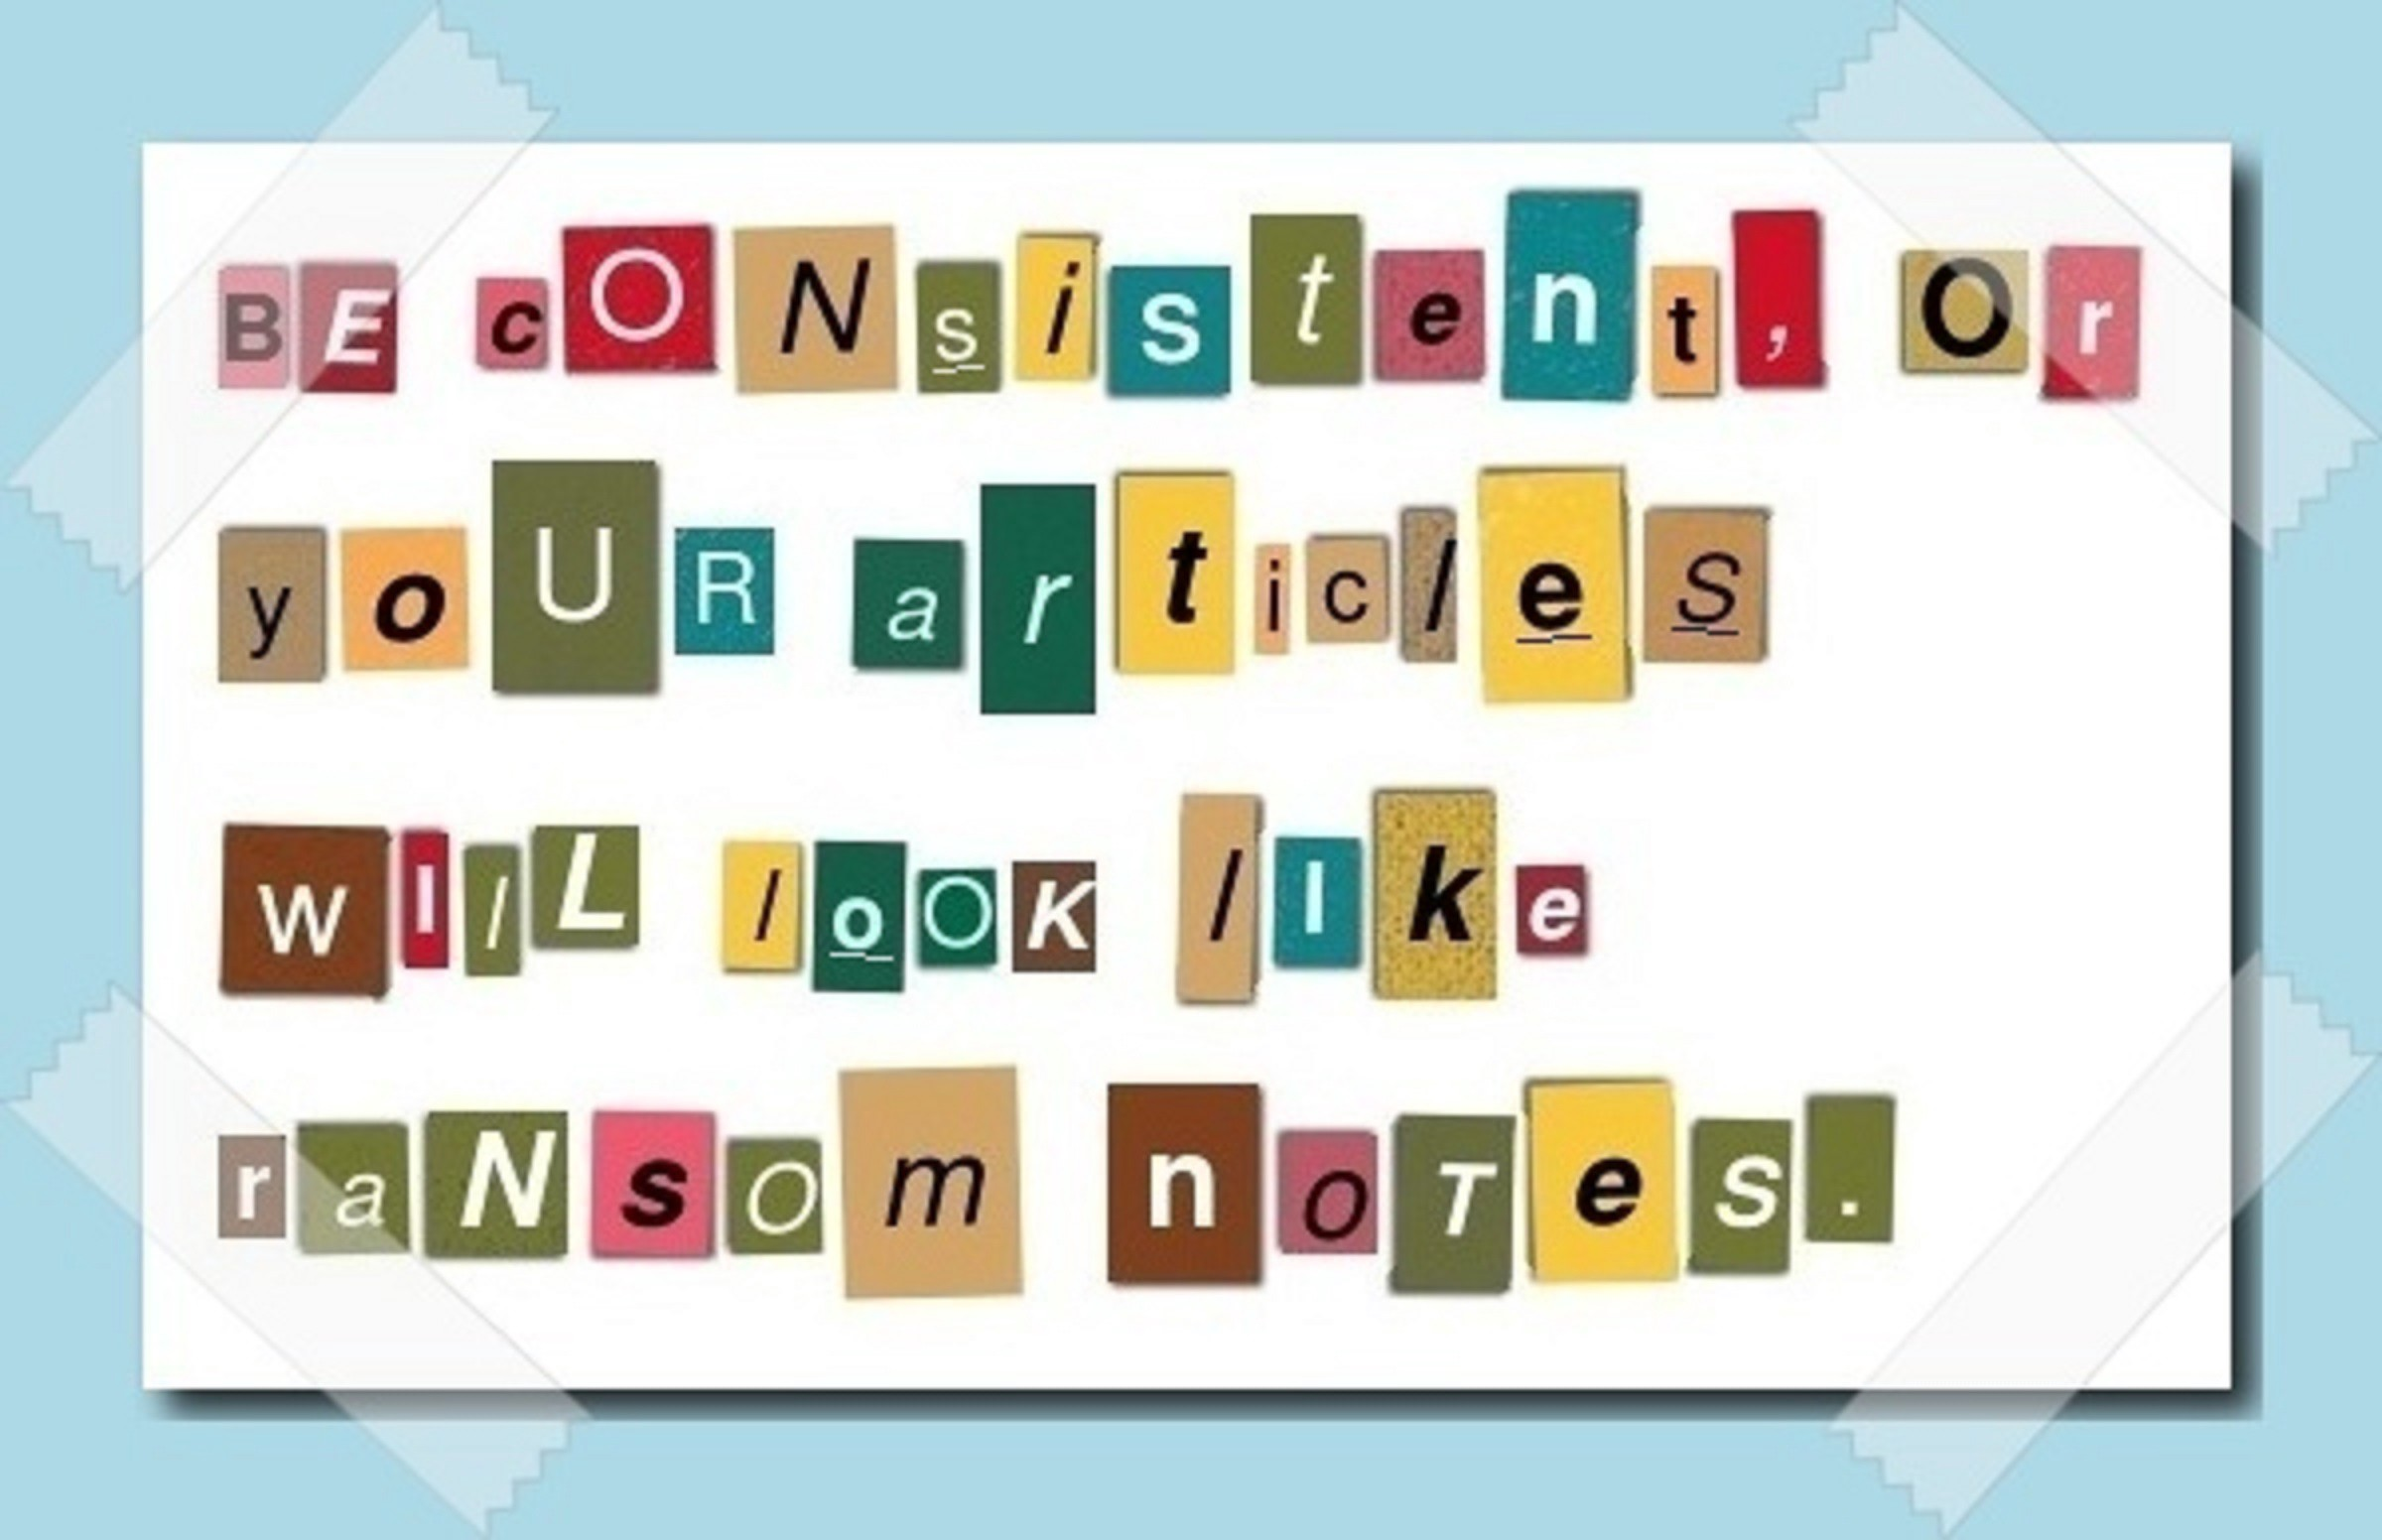 A warning to be consistent with formatting, disguised as a ransom note.